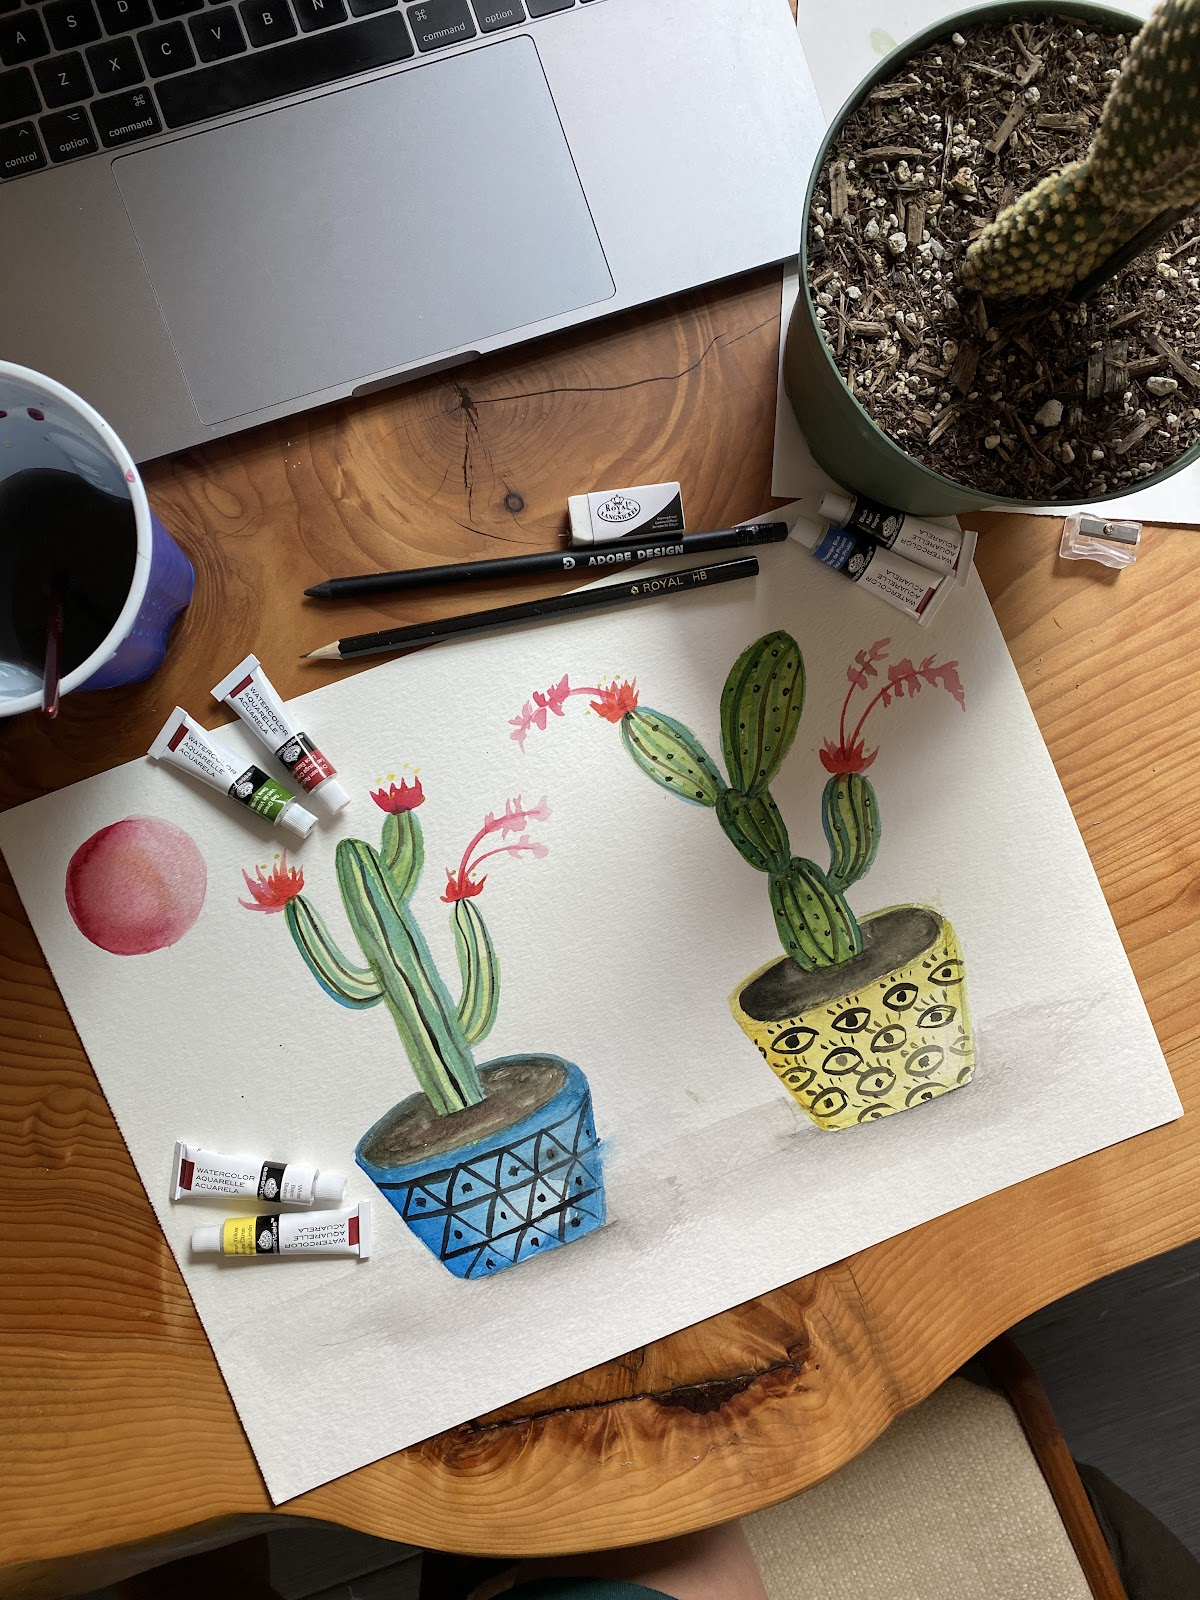 A watercolor painted by senior experience designer Cheryl Chang in a Jenny Lemons remote employee workshop.